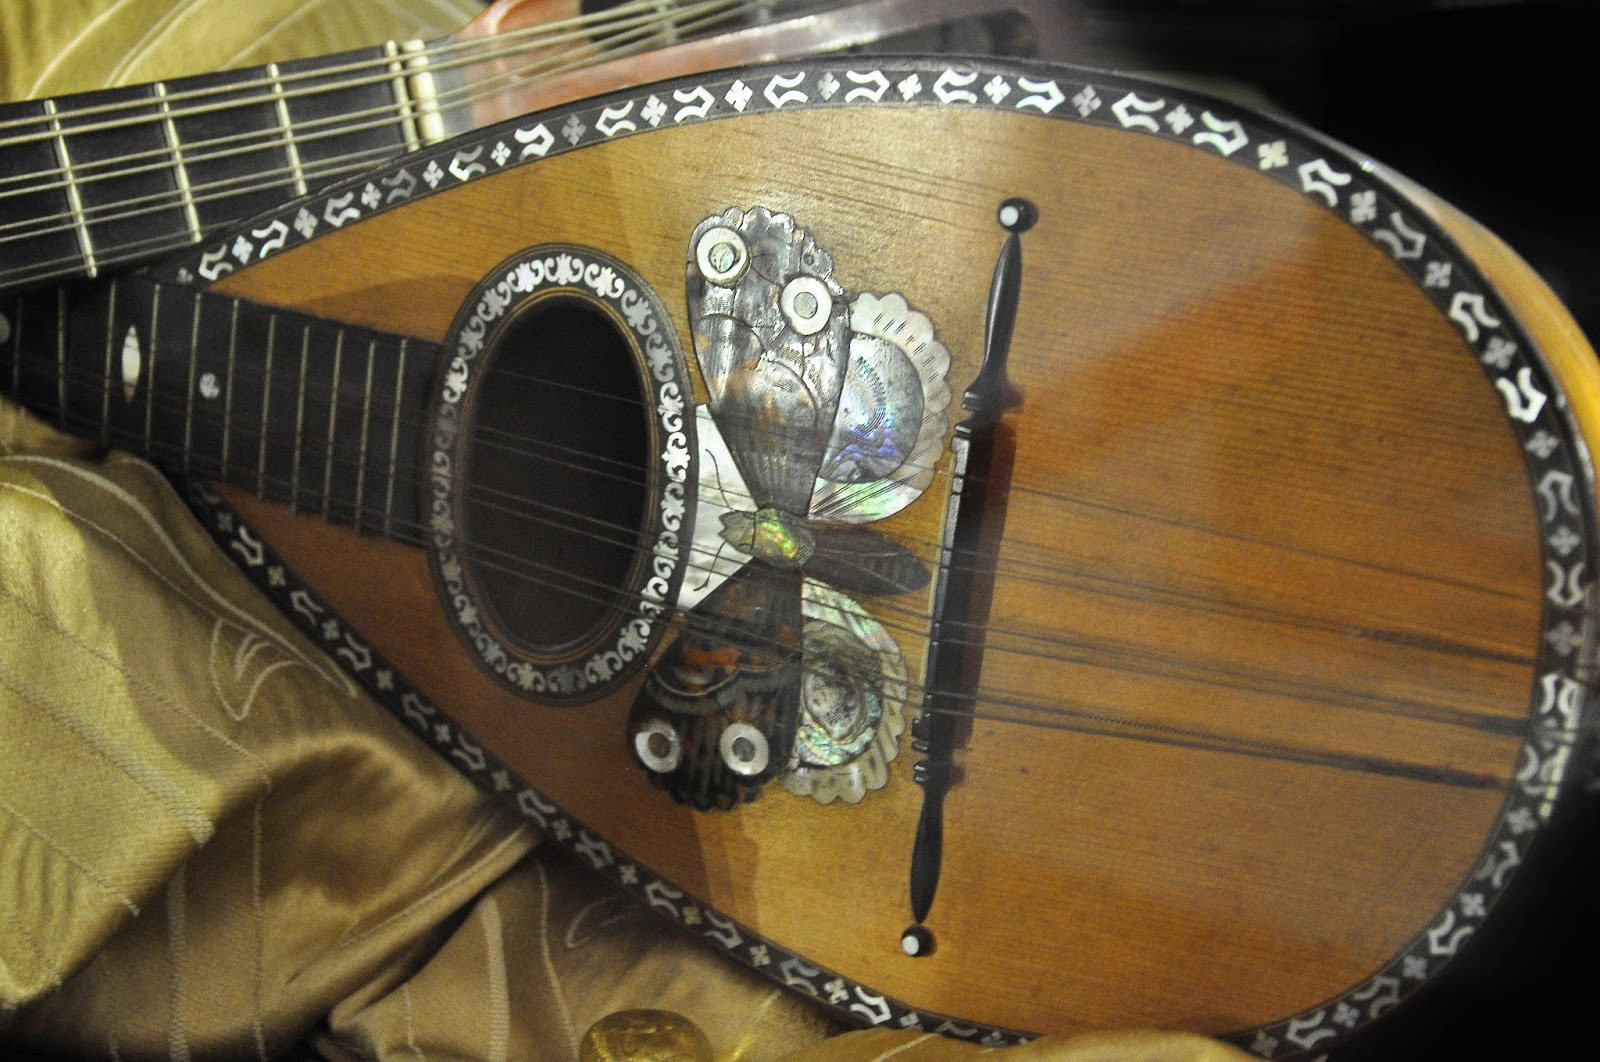 A close-up of a mandolin, Museum of the Music, Venice, Italy